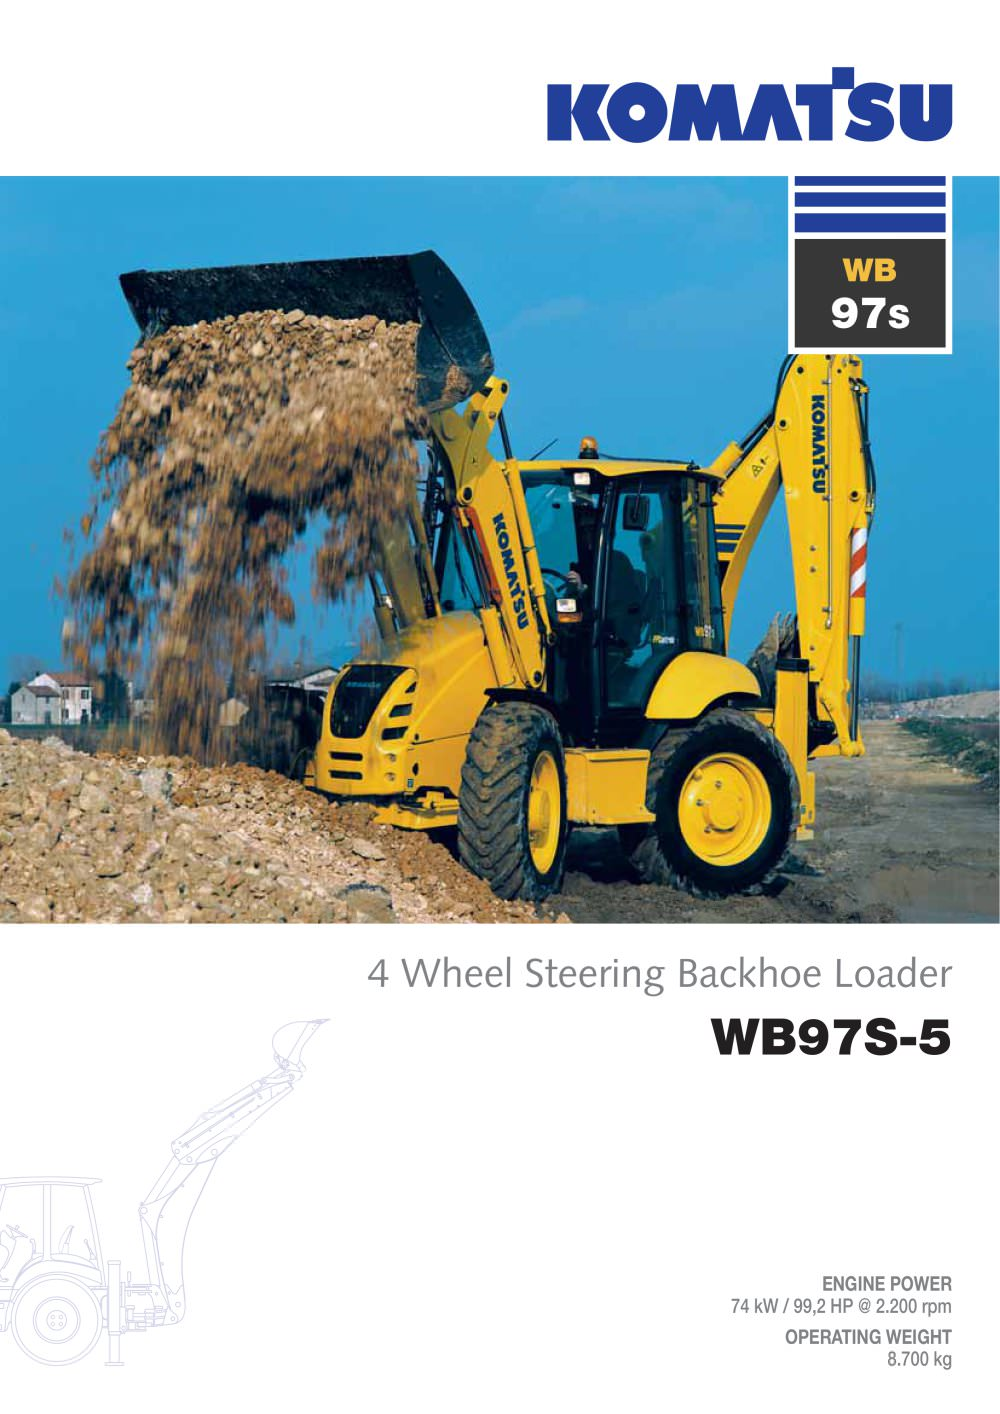 WB97S-5 - 1 / 12 Pages